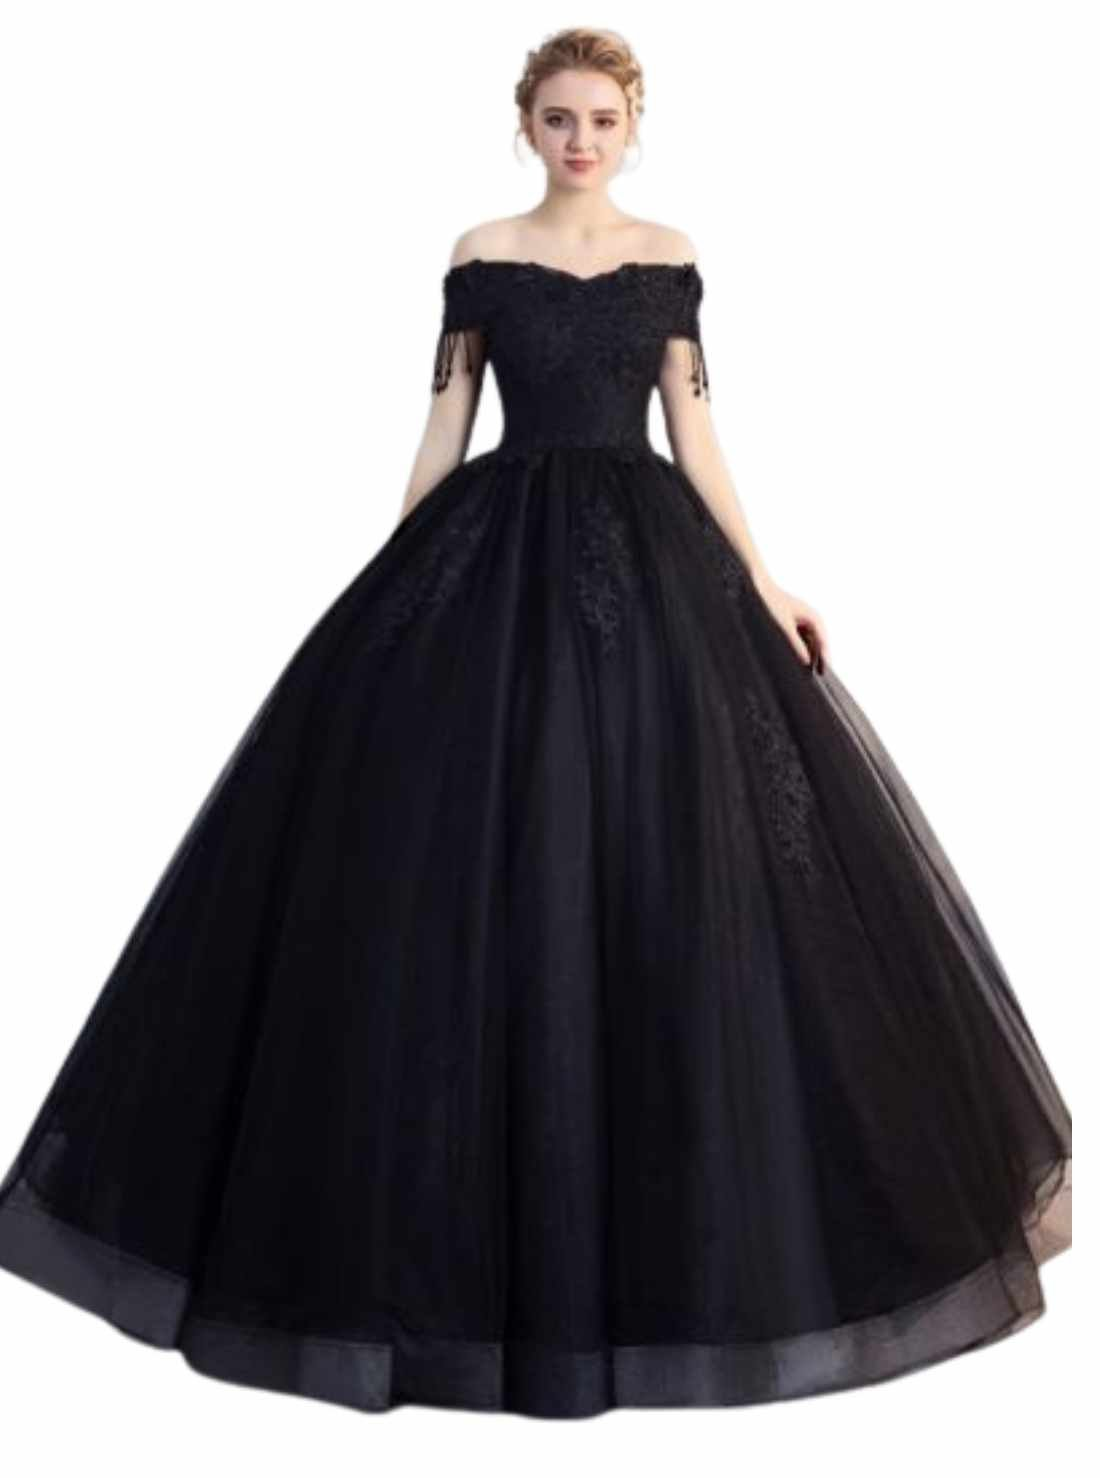 Black Puffy Prom Dresses Ball Gown Lace Flower Beading Pearl Tassel Off-The-Shoulder Backless